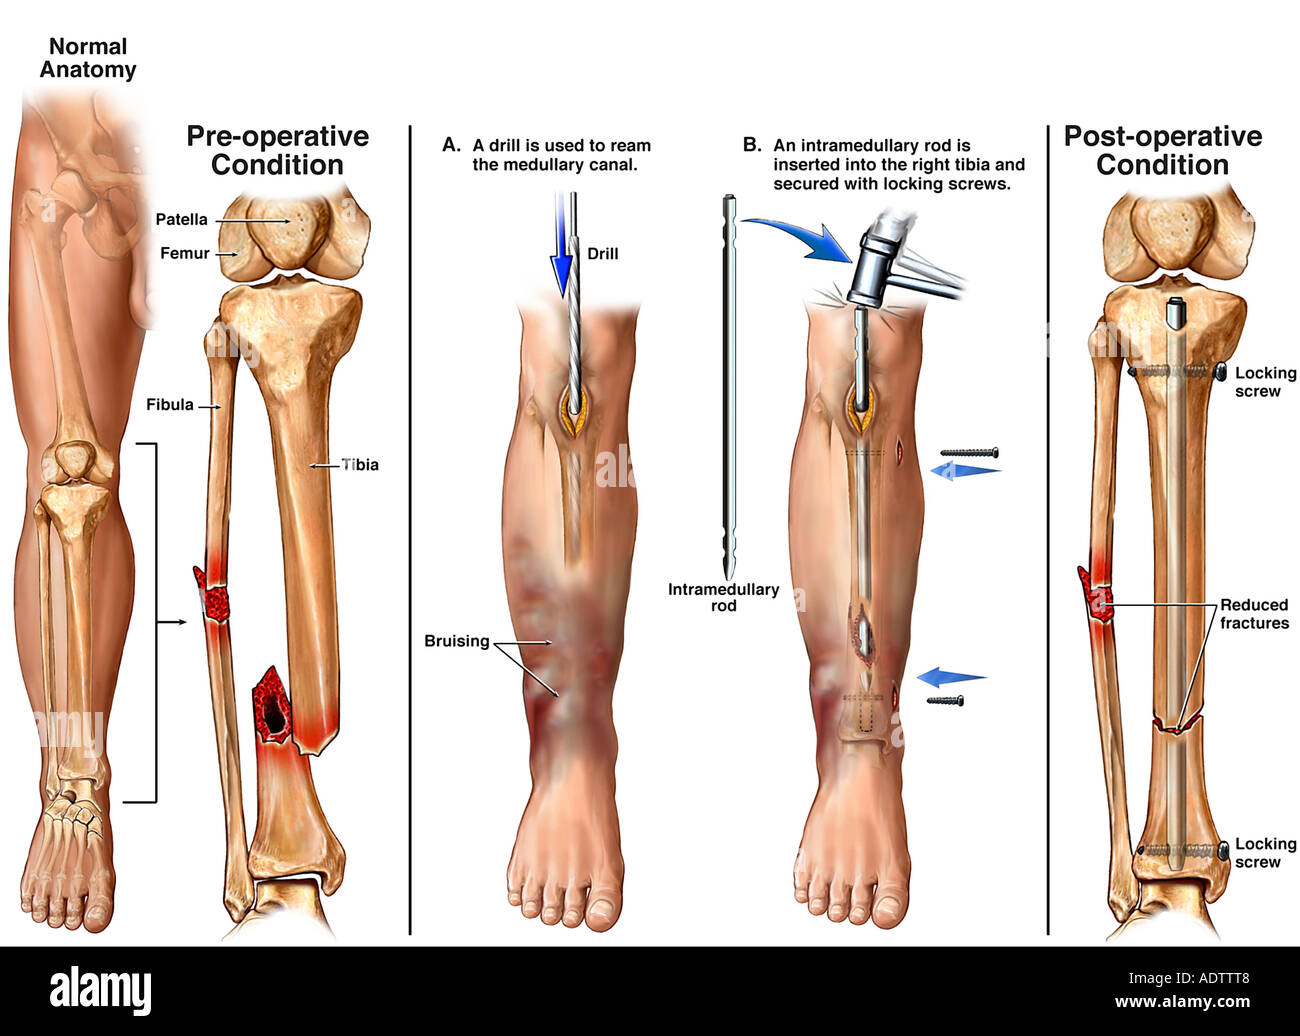 Lower Leg Fractures Broken Tibia And Fibula With Surgical Fixation